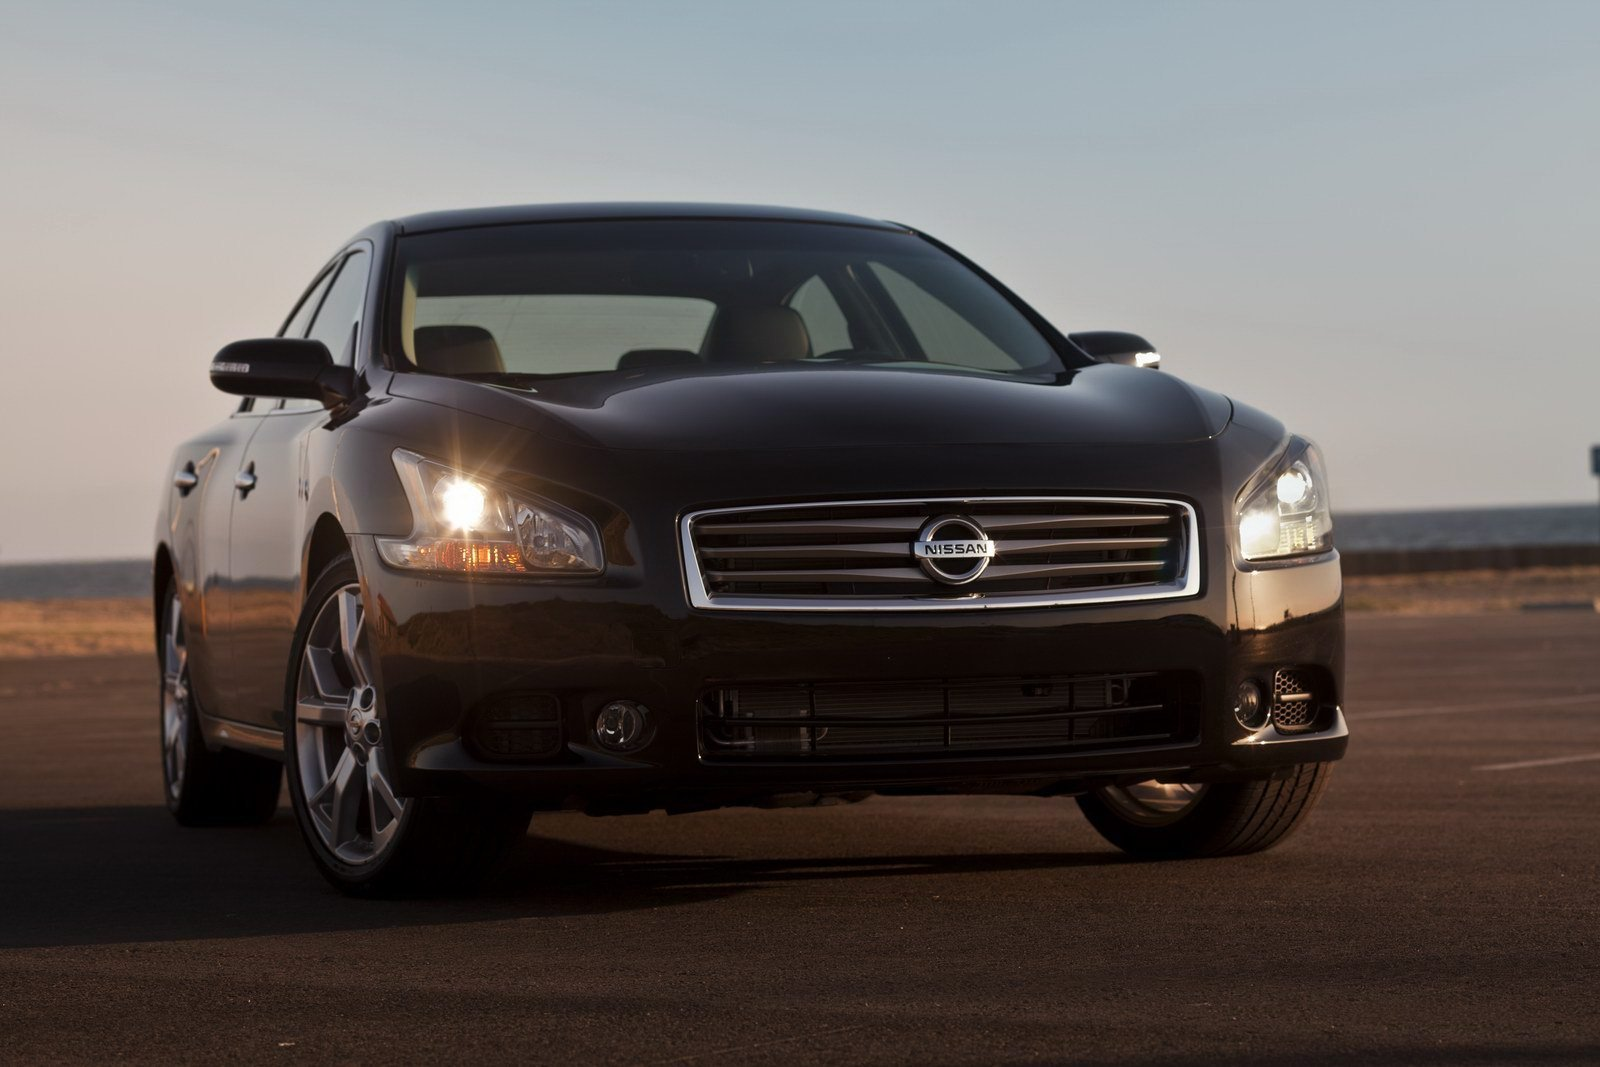 nissan maxima reviews, specs & prices - top speed